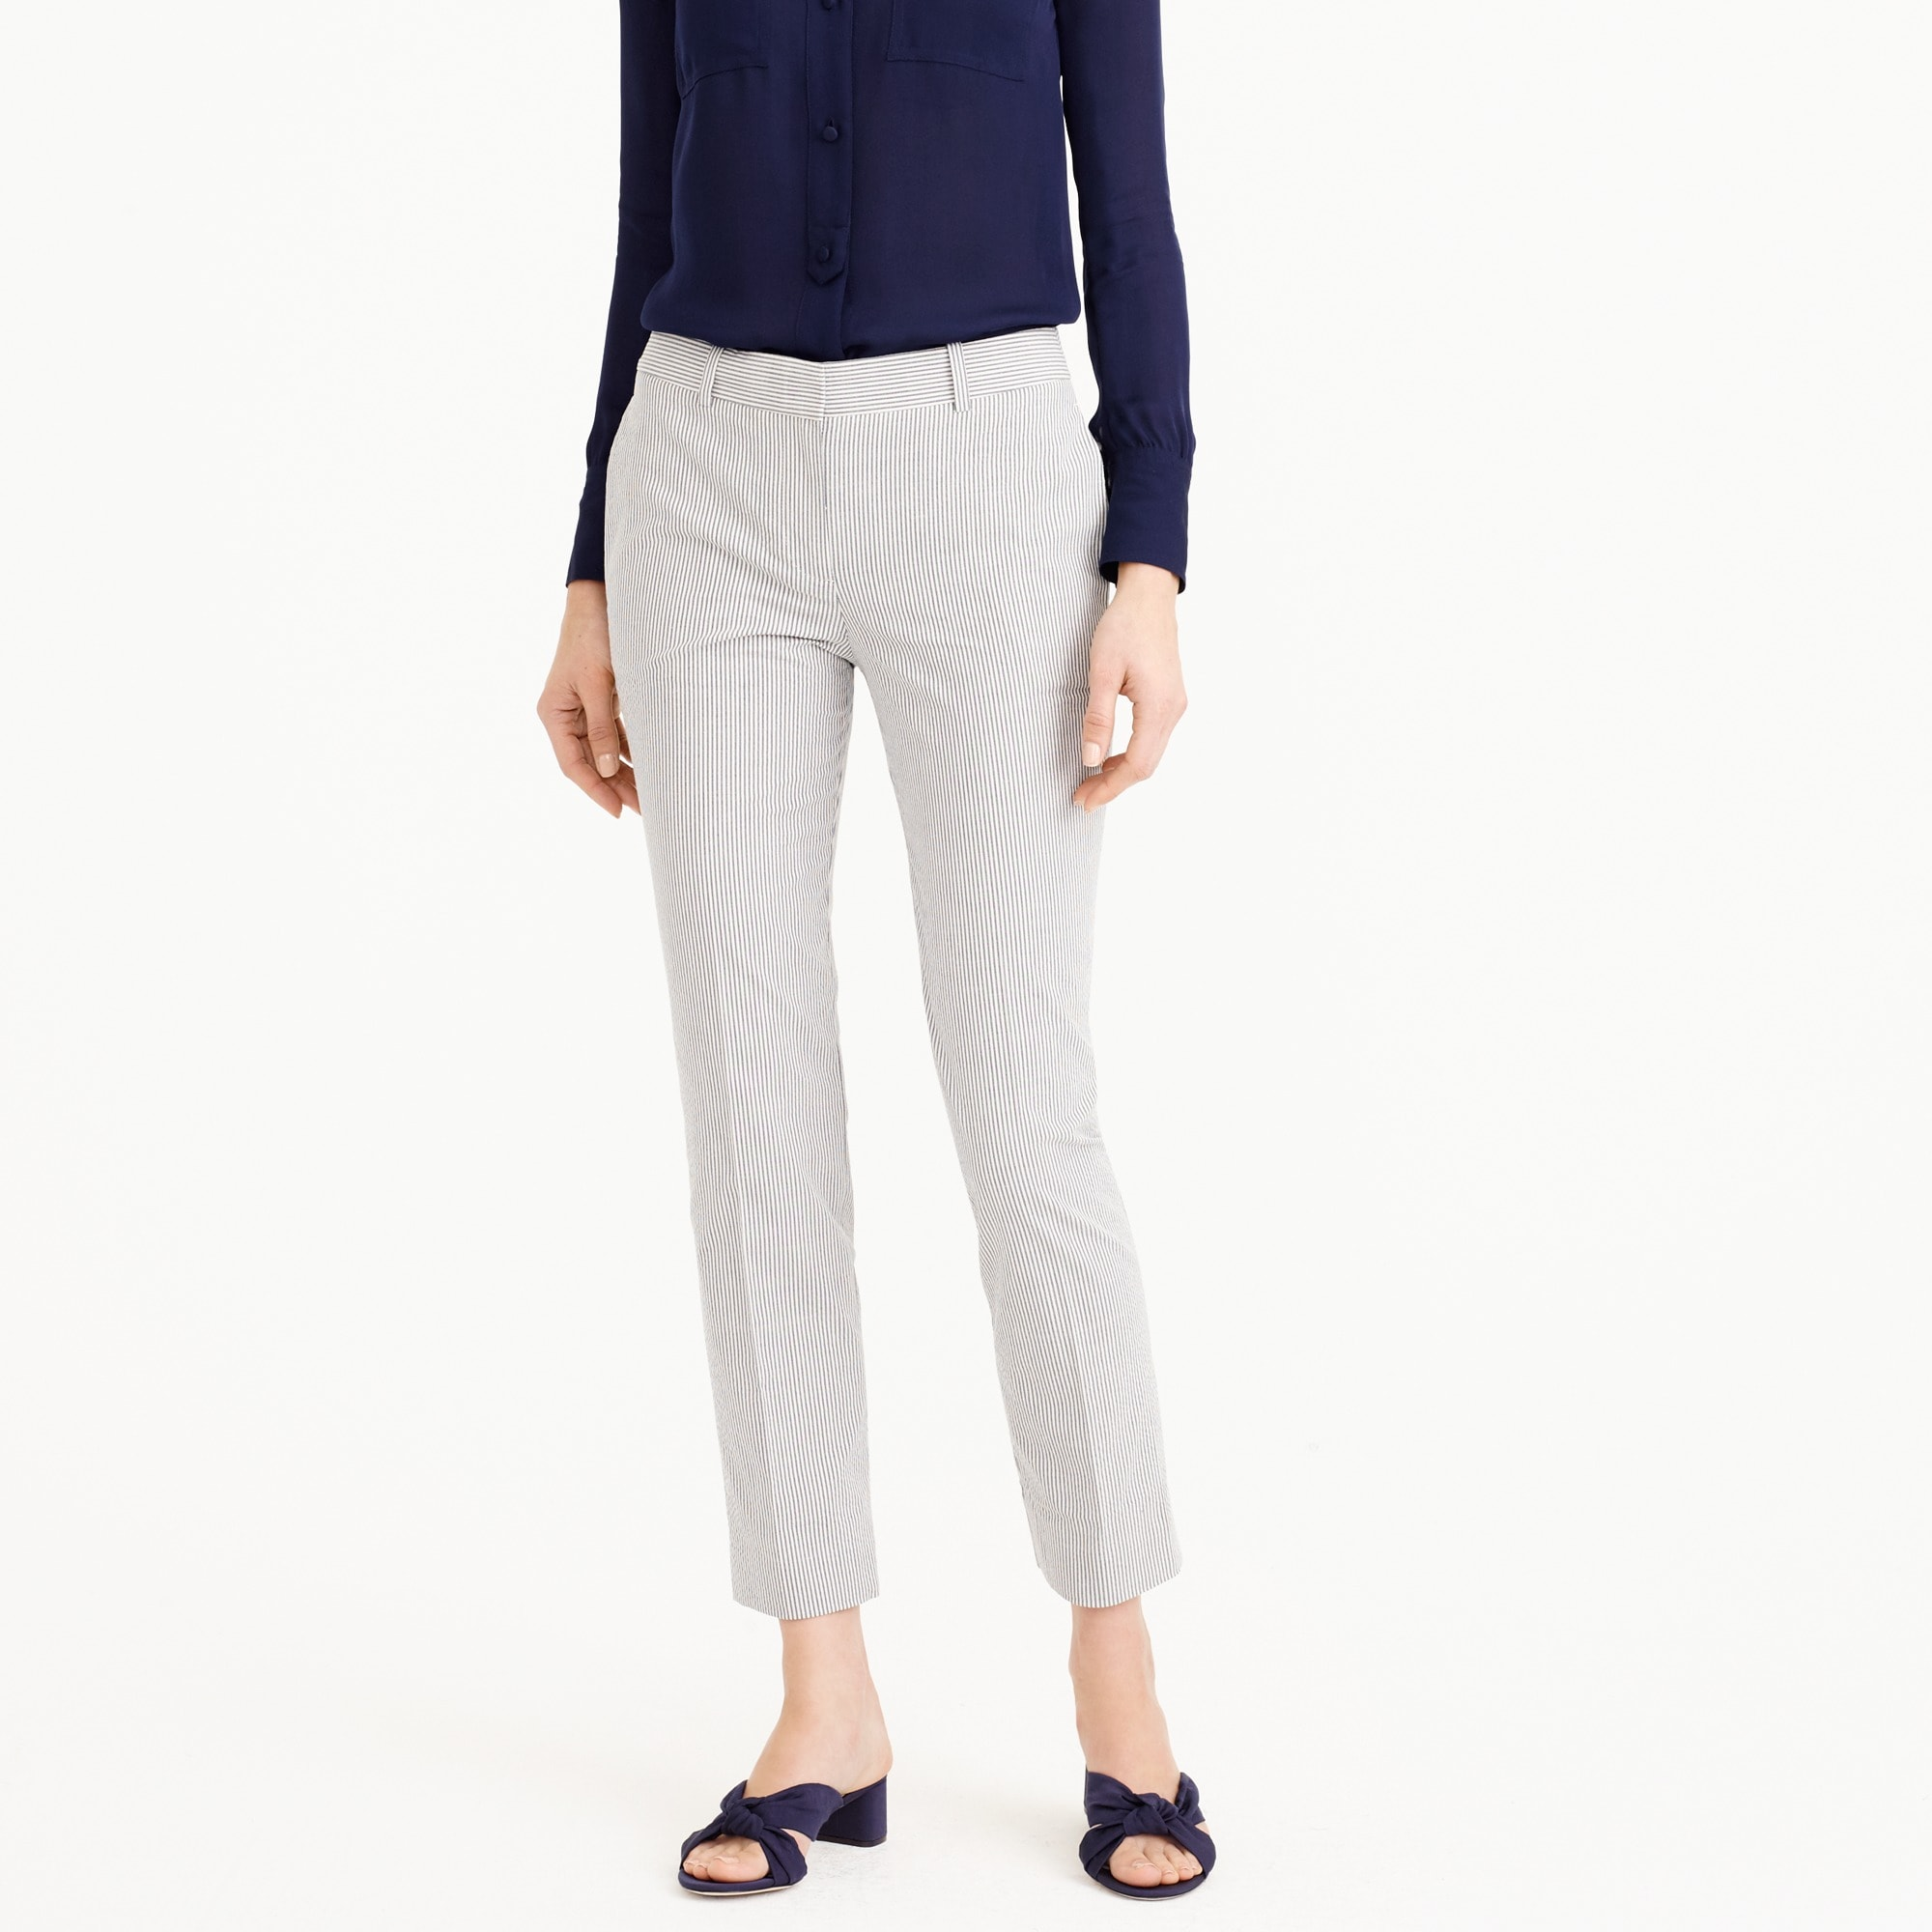 Cropped trouser in seersucker